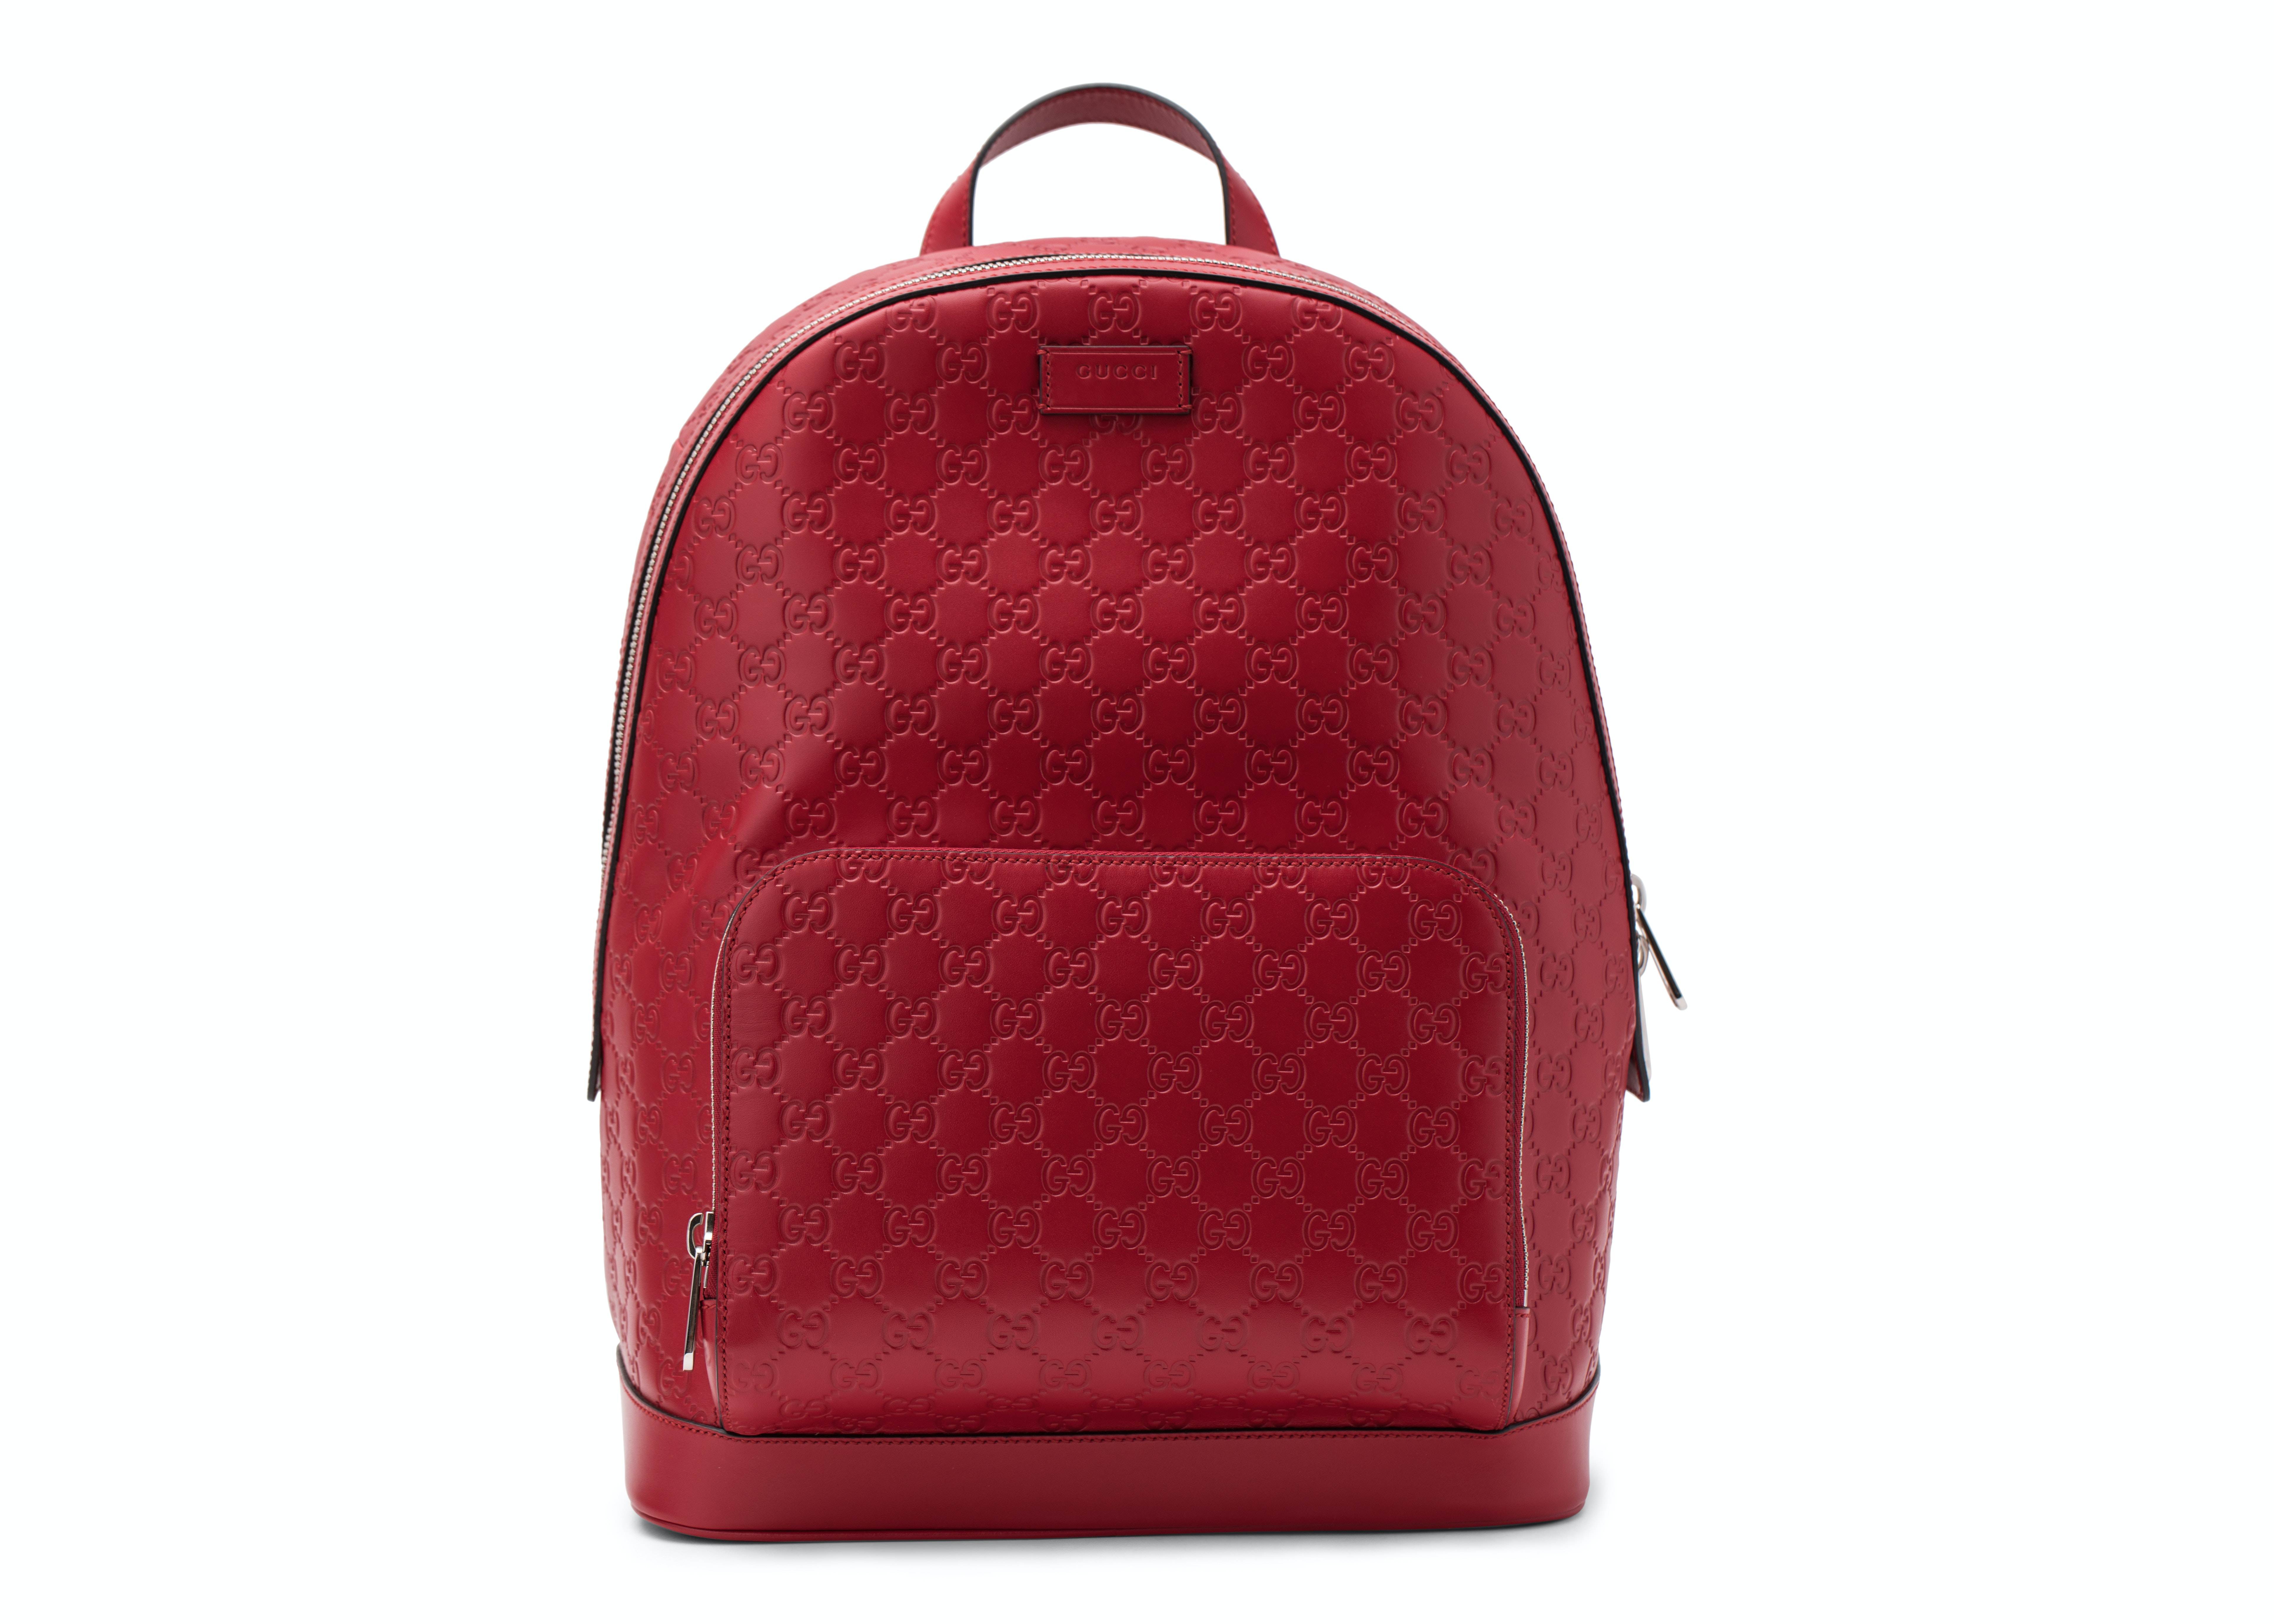 Gucci Signature Backpack Monogram GG Front Zipper Pocket/Embossed Hibiscus Red